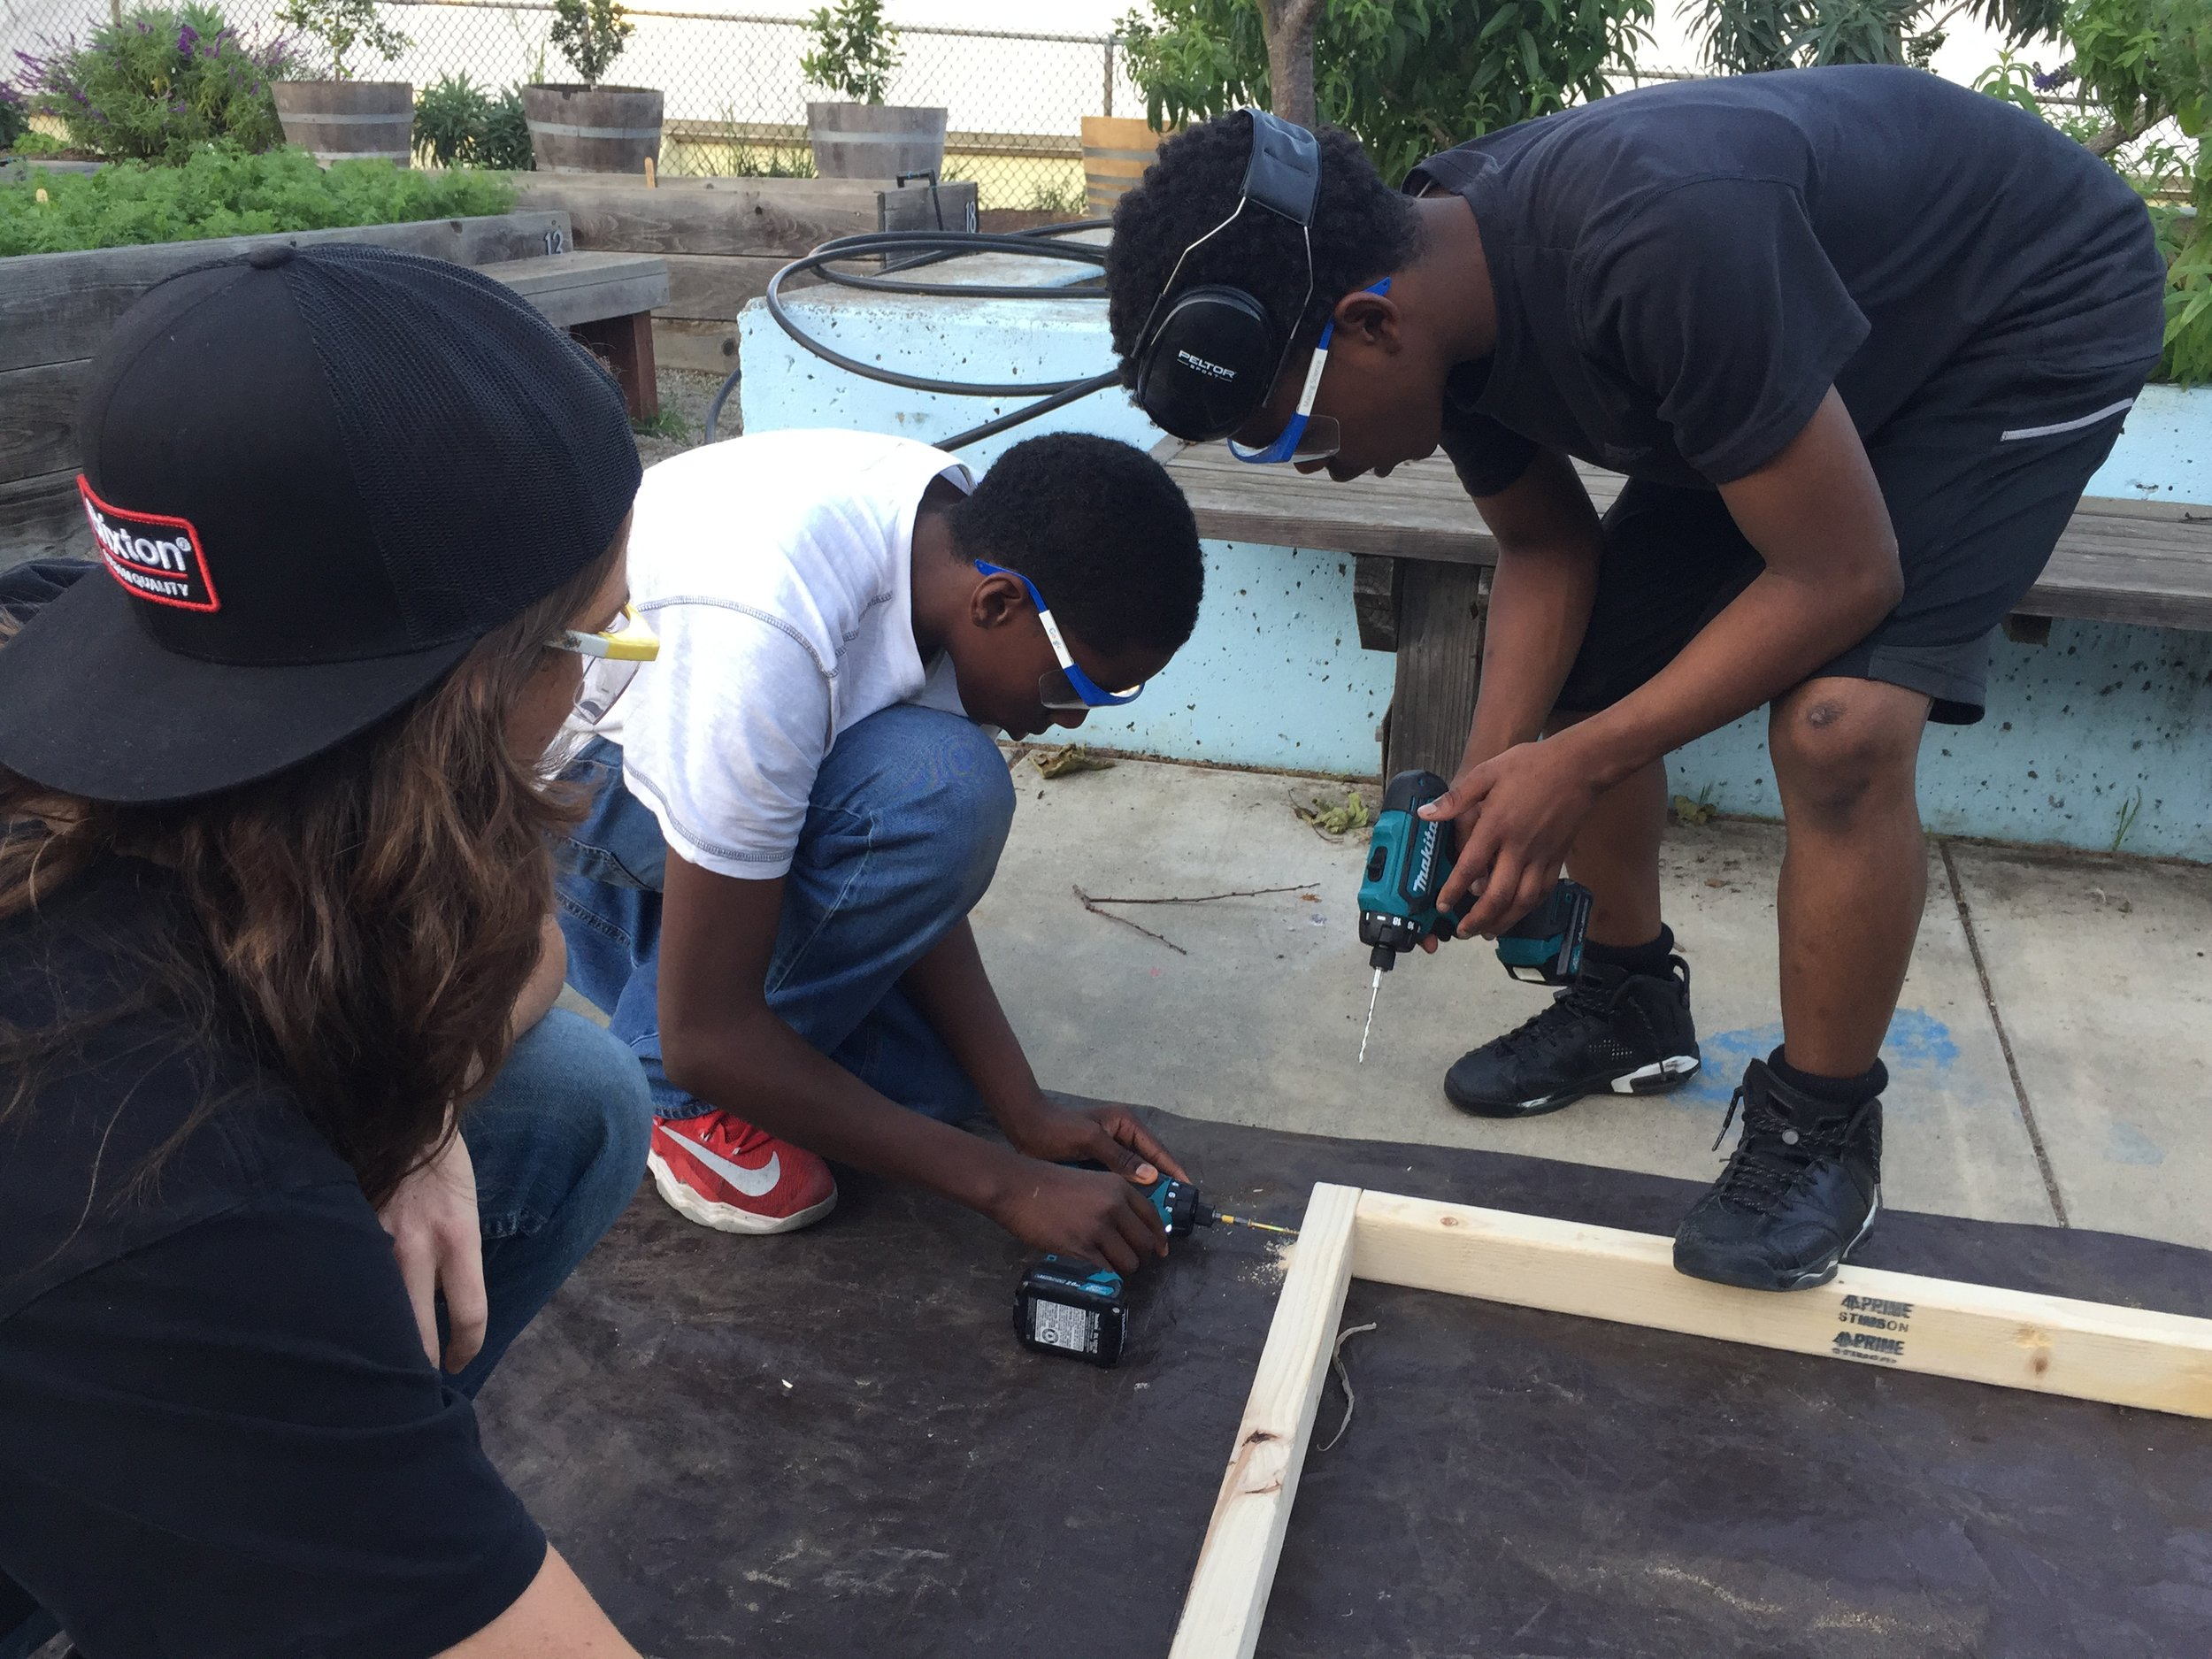 Malieke and Edward found they could be super productive working together by taking turns drilling and screwing.